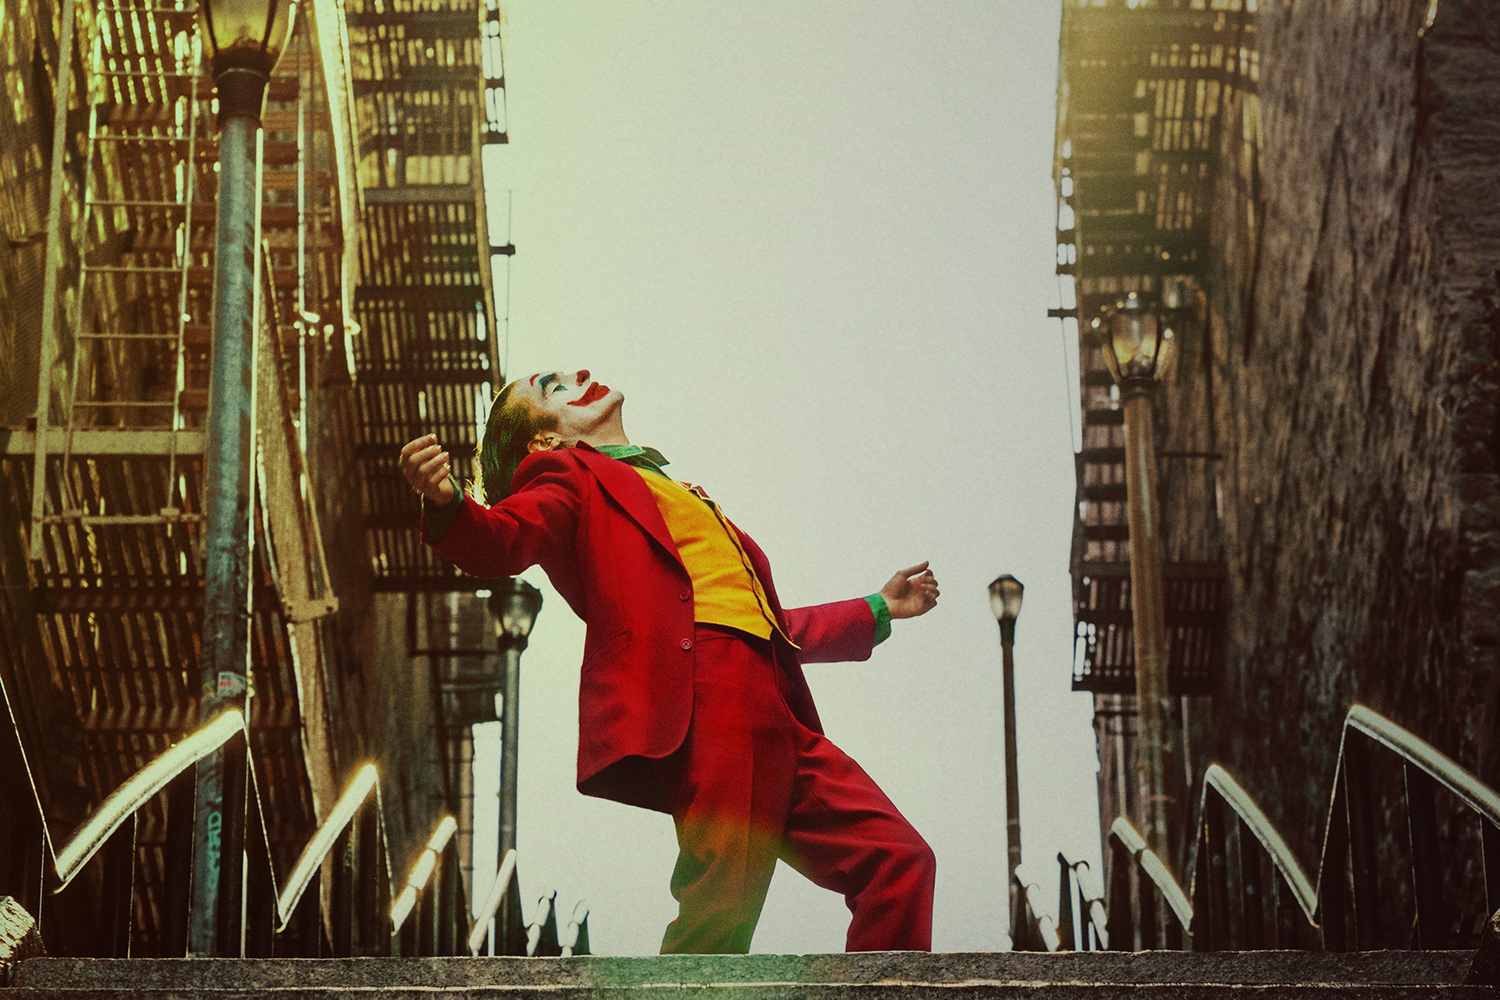 Joker released to theaters on Oct. 4, 2019.